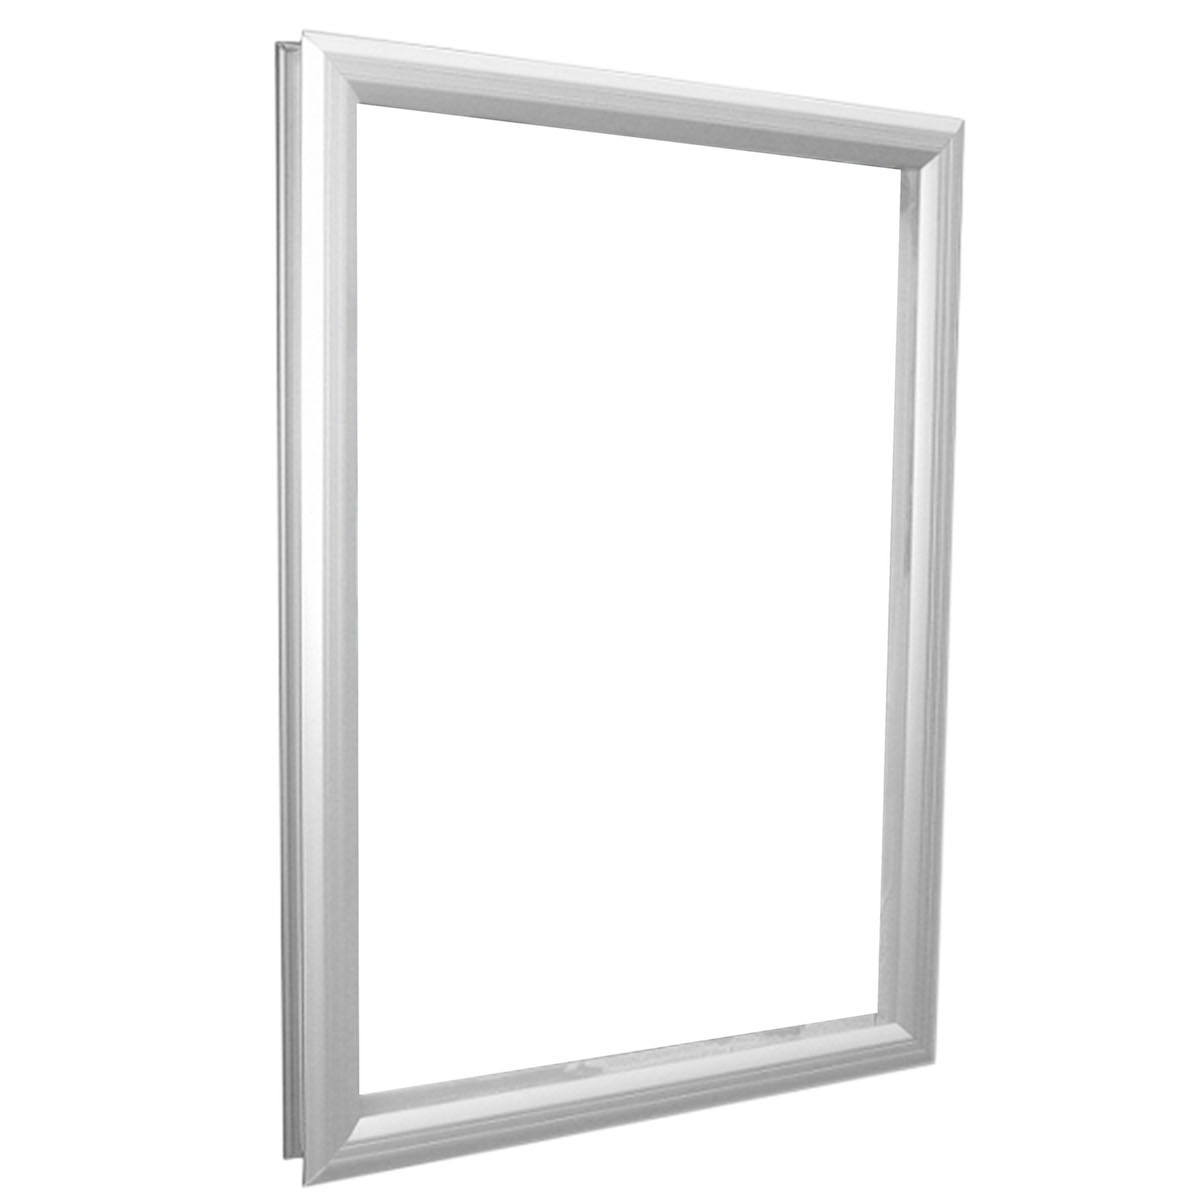 ALU-SNAP TYPE FRAME FOR WINDOWS, 700X1000 MM (PROFILE 25 MM) COUNTERFRAME INCLUDED